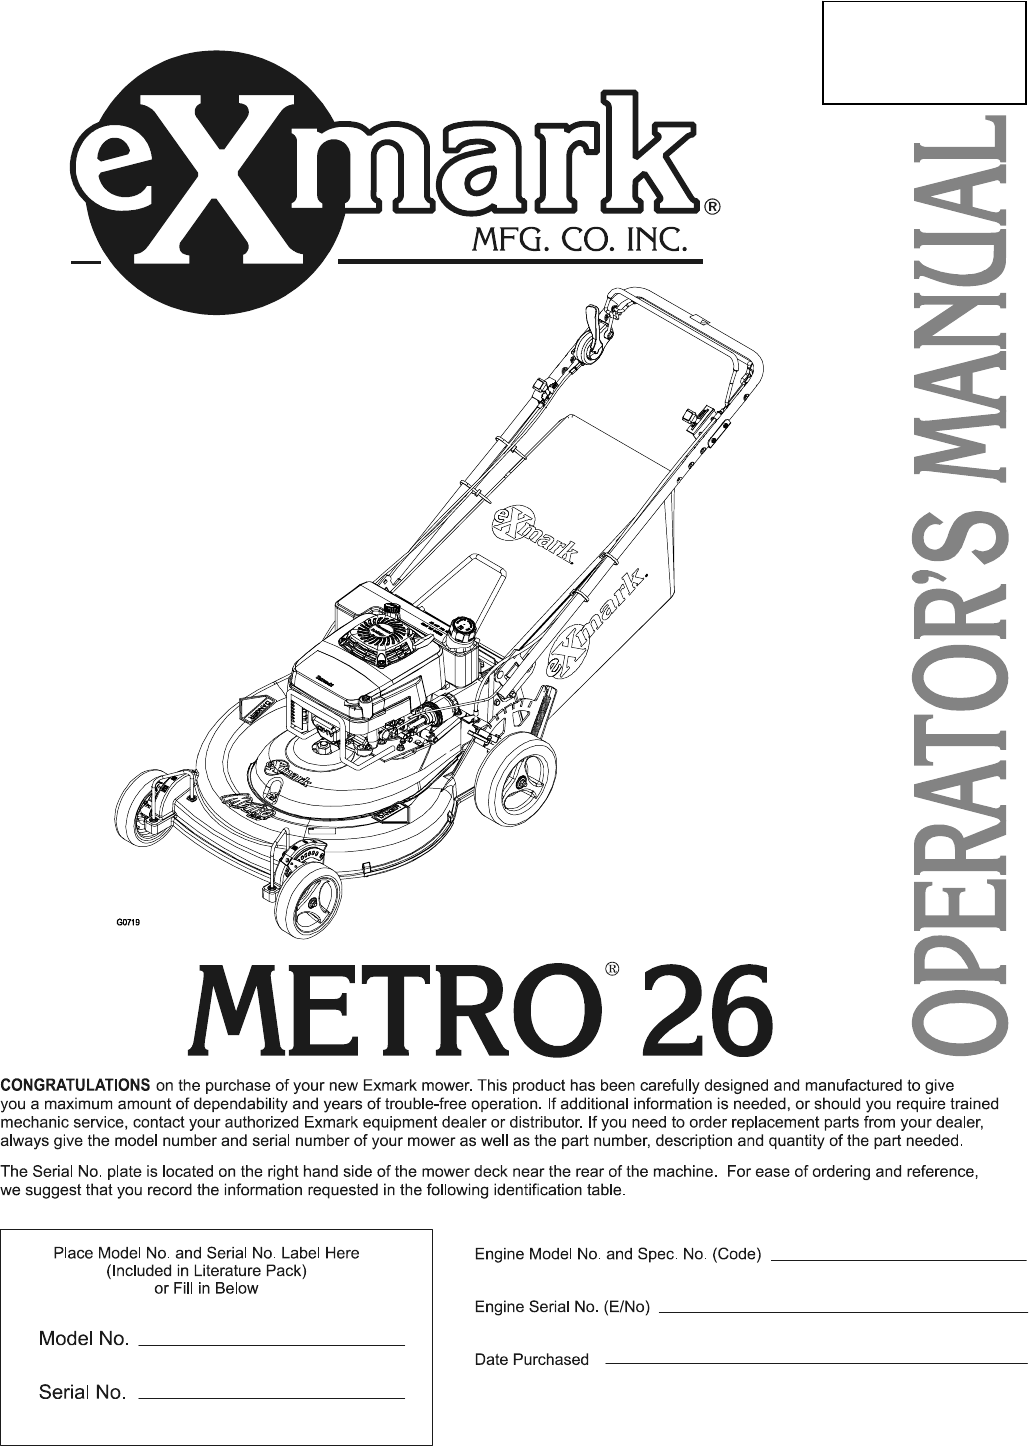 exmark metro 26 109 5511 user manual to the f5431943 6134 4310 bf4e rh usermanual wiki Exmark Metro 26 21 Echo Exmark